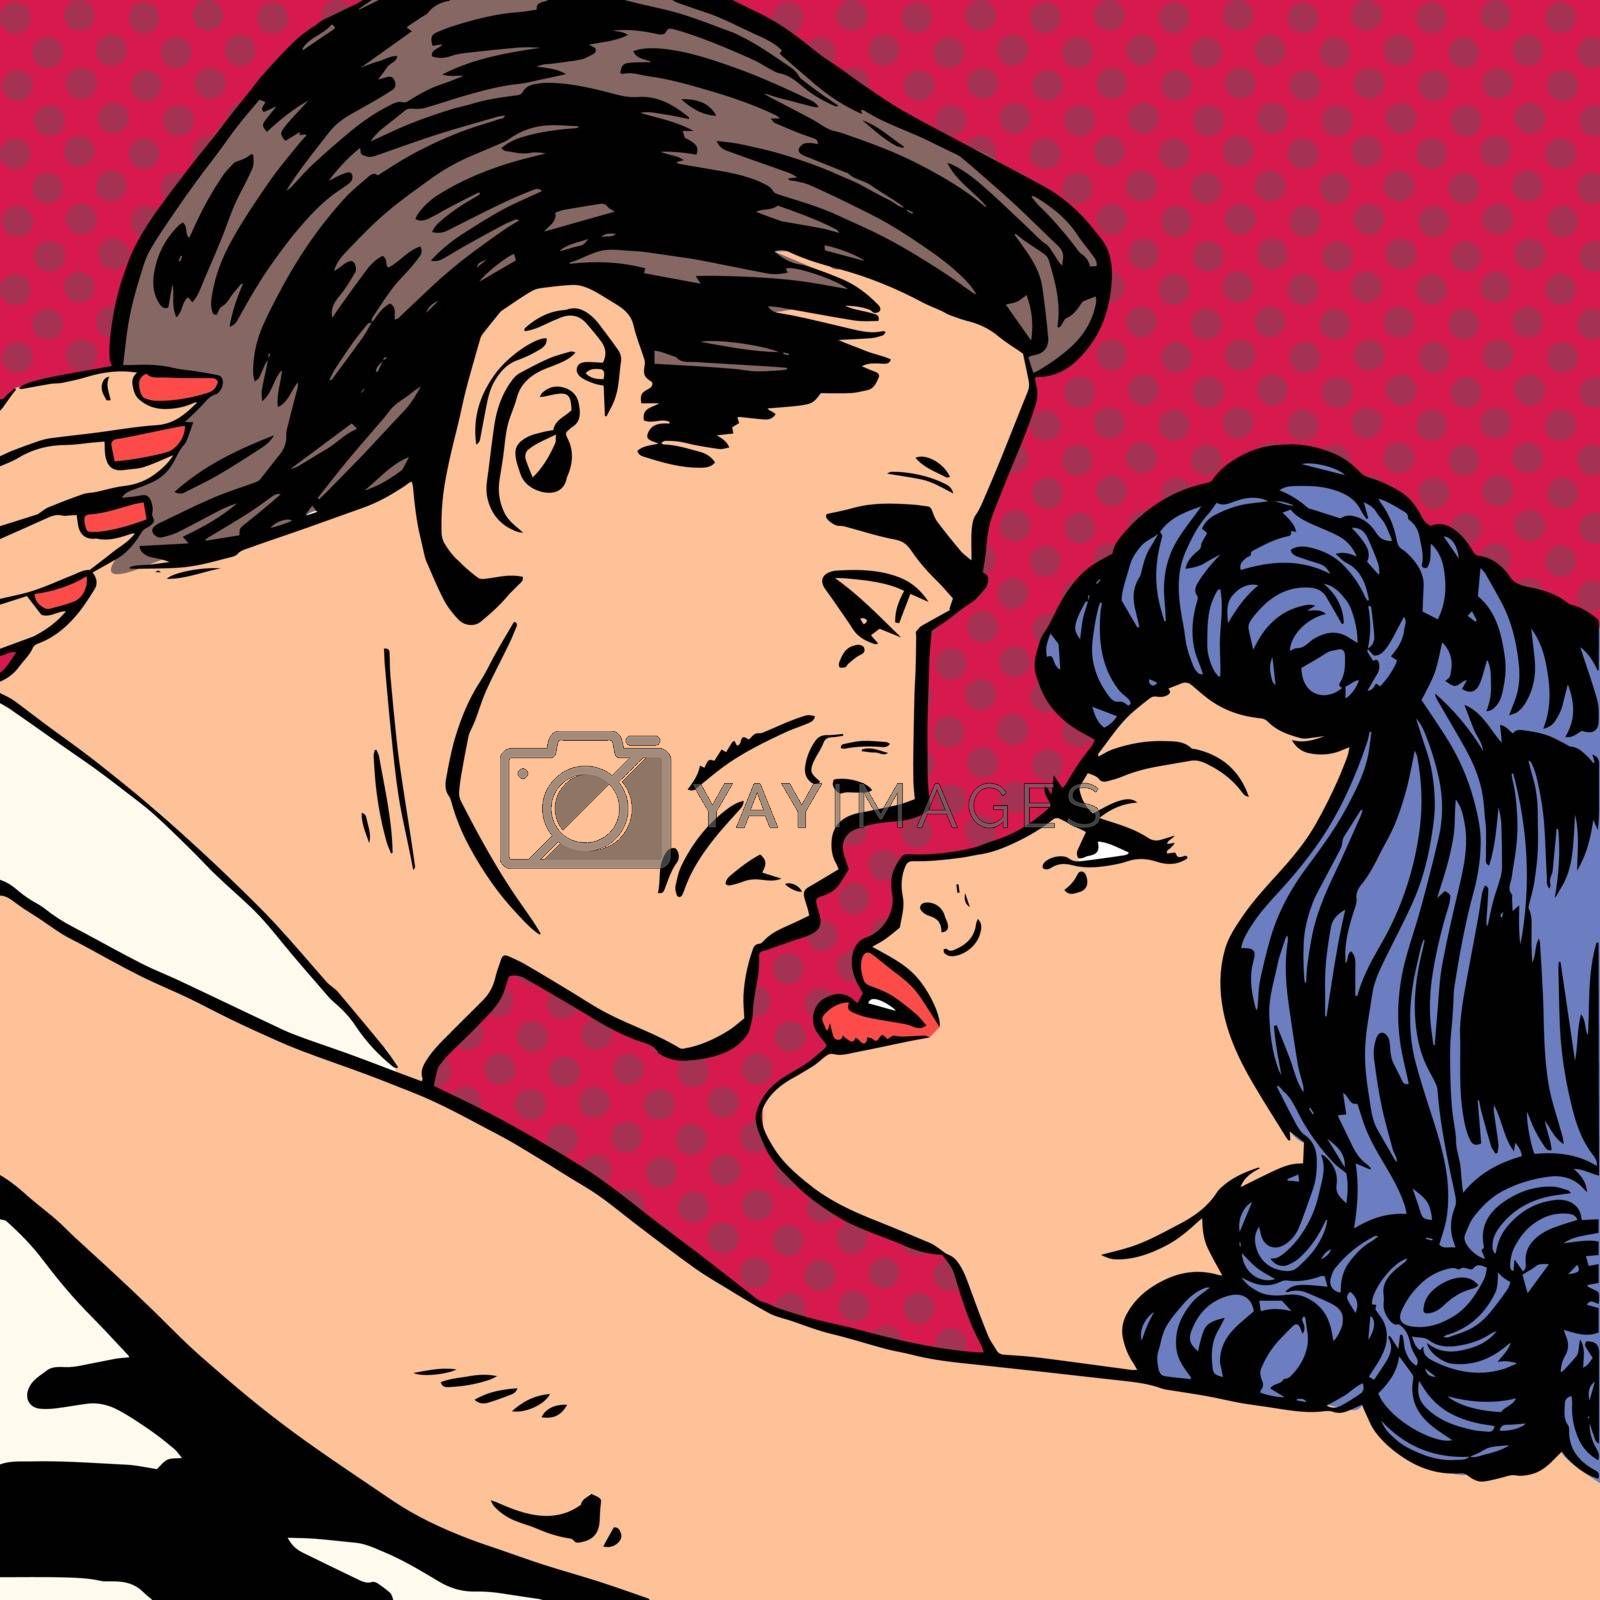 Kiss love movie romance heroes lovers man and woman pop art comics retro style Halftone. Imitation of old illustrations. Actors during love scenes.